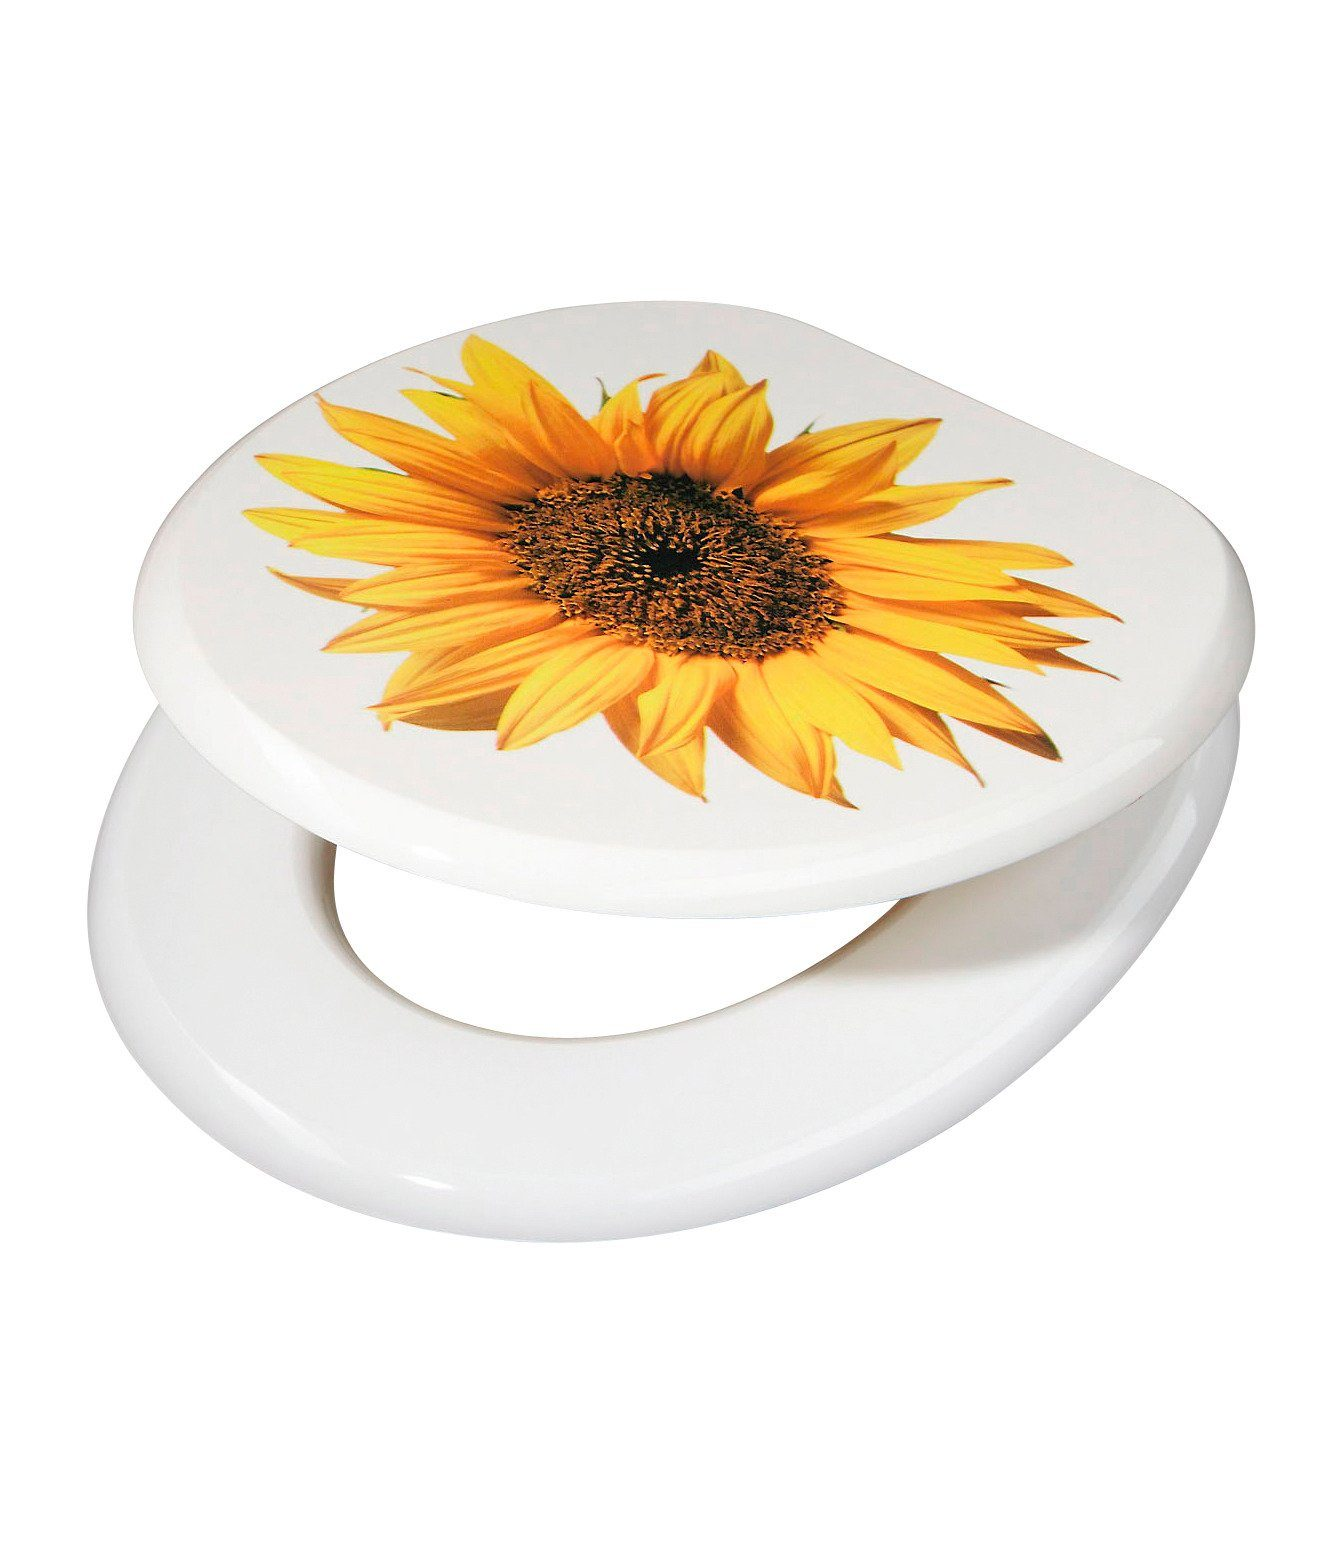 Adob WC-Sitz »Sunflower«